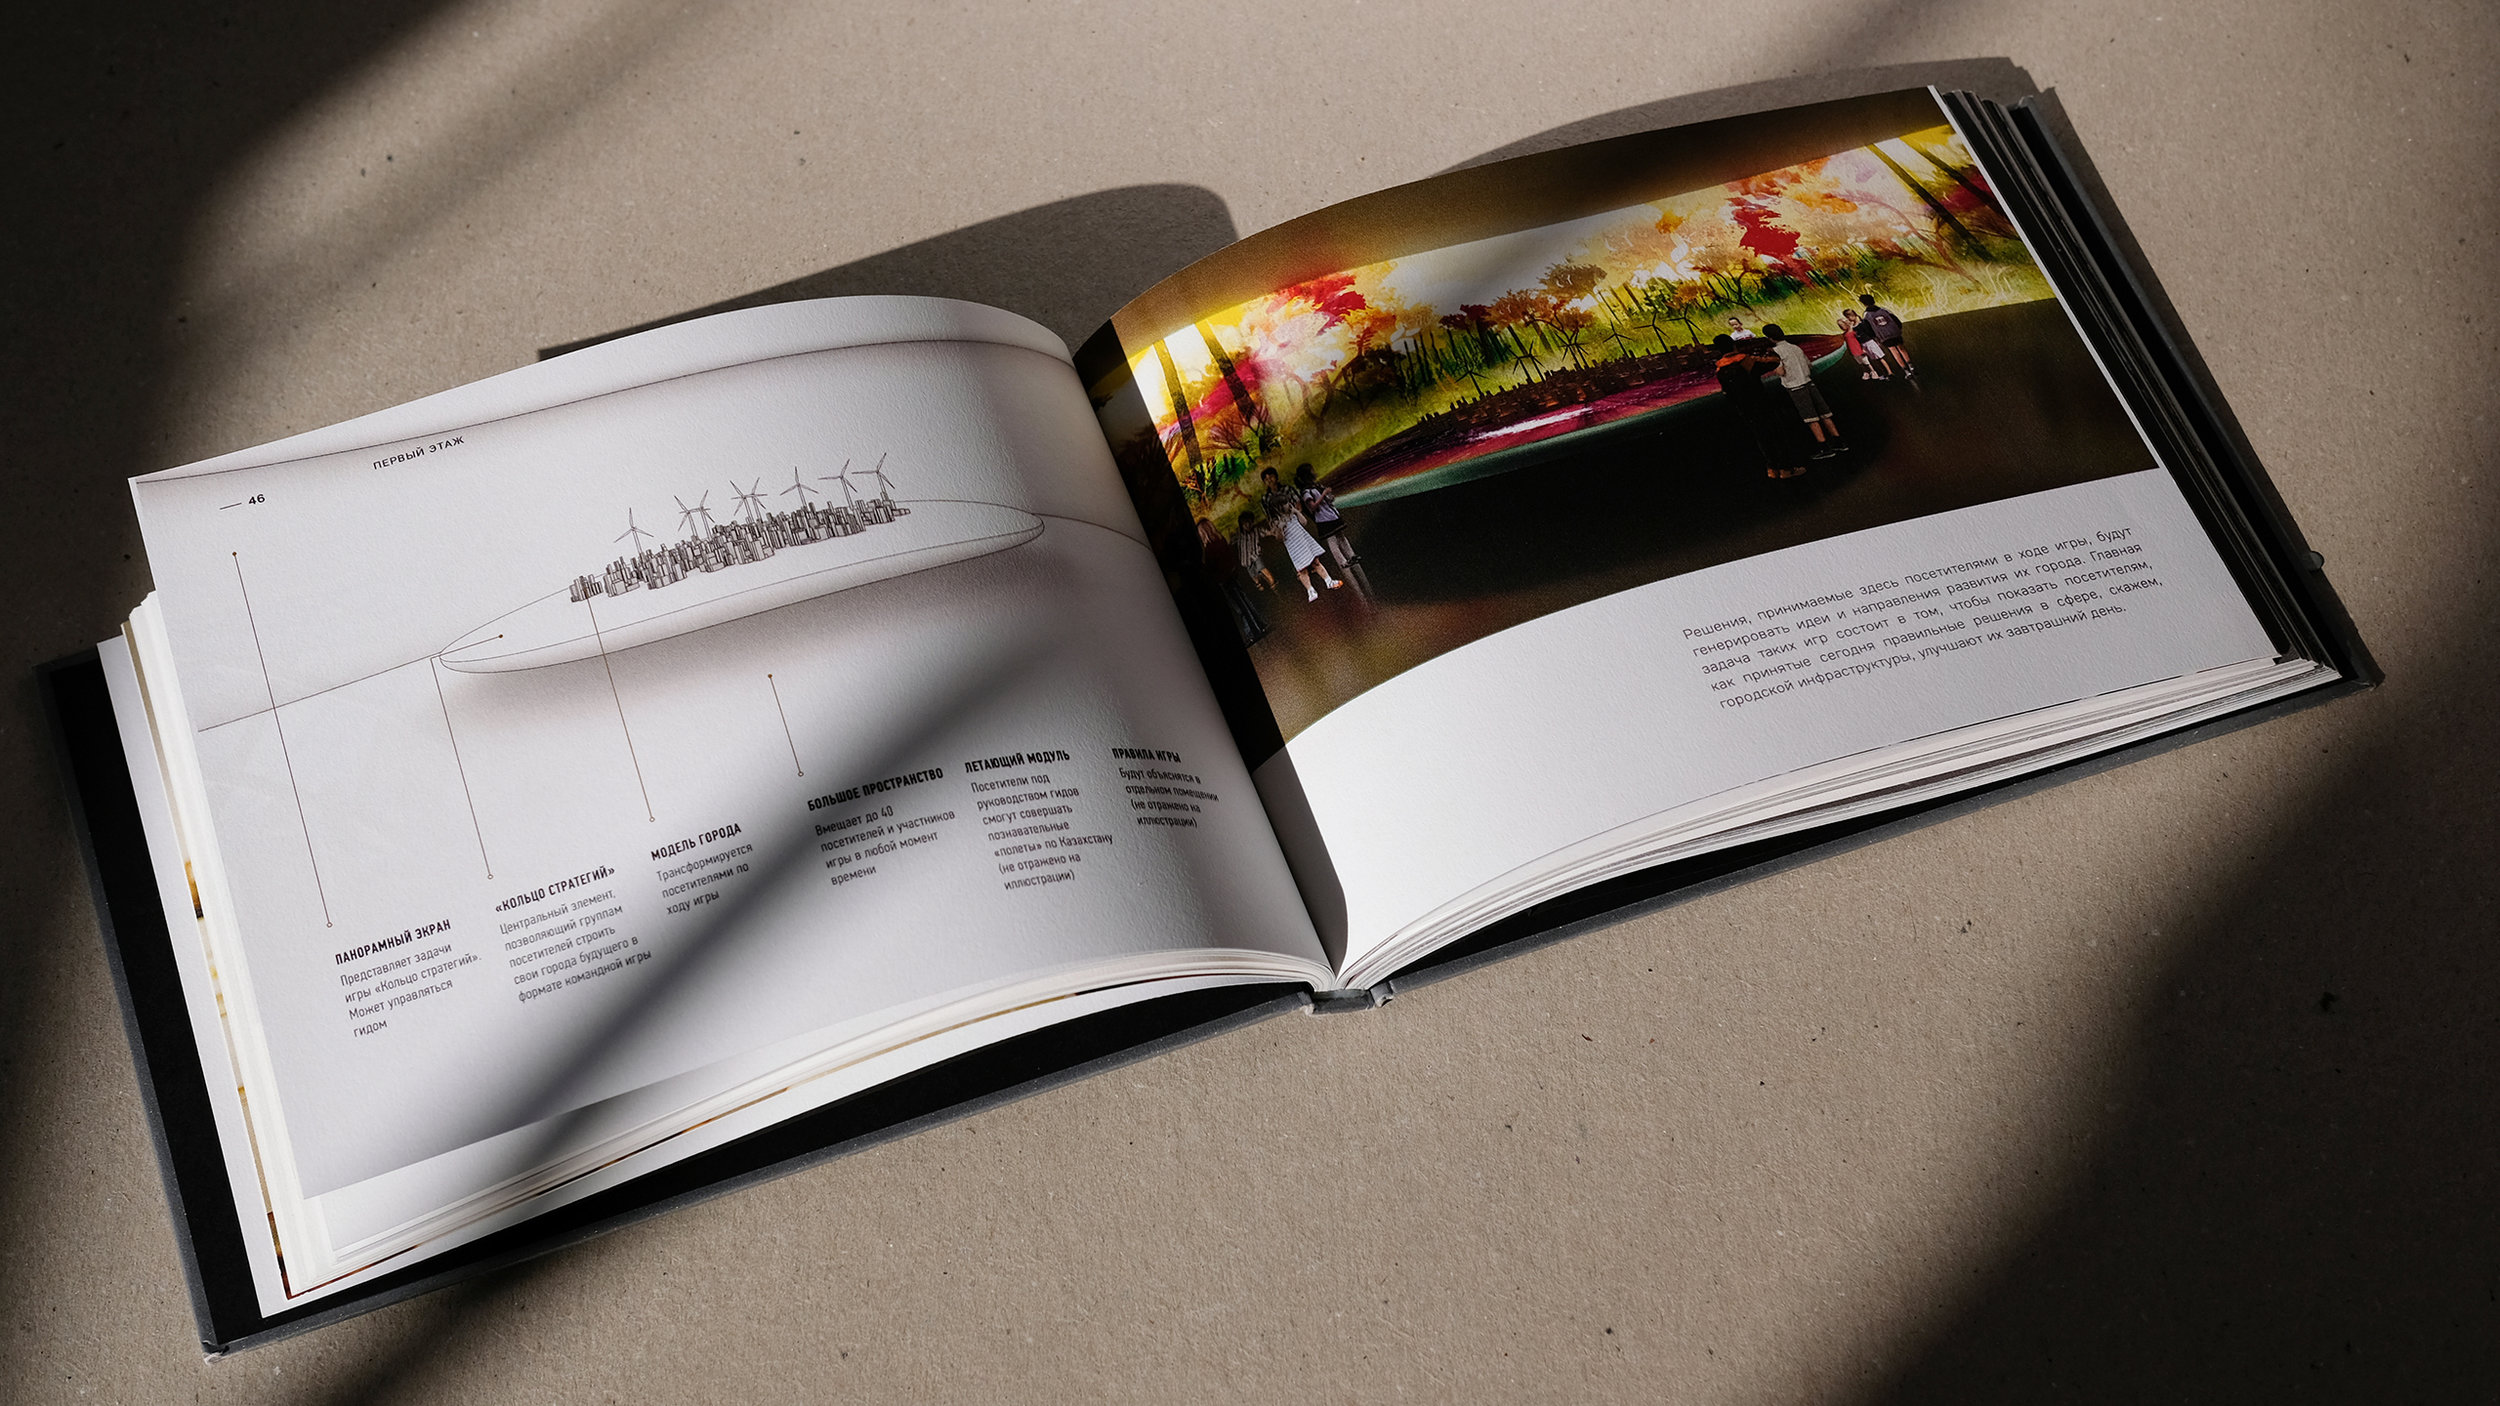 RAANY-book-design-editorial-galia-rybitskaya-a-yadesign-L5.jpg